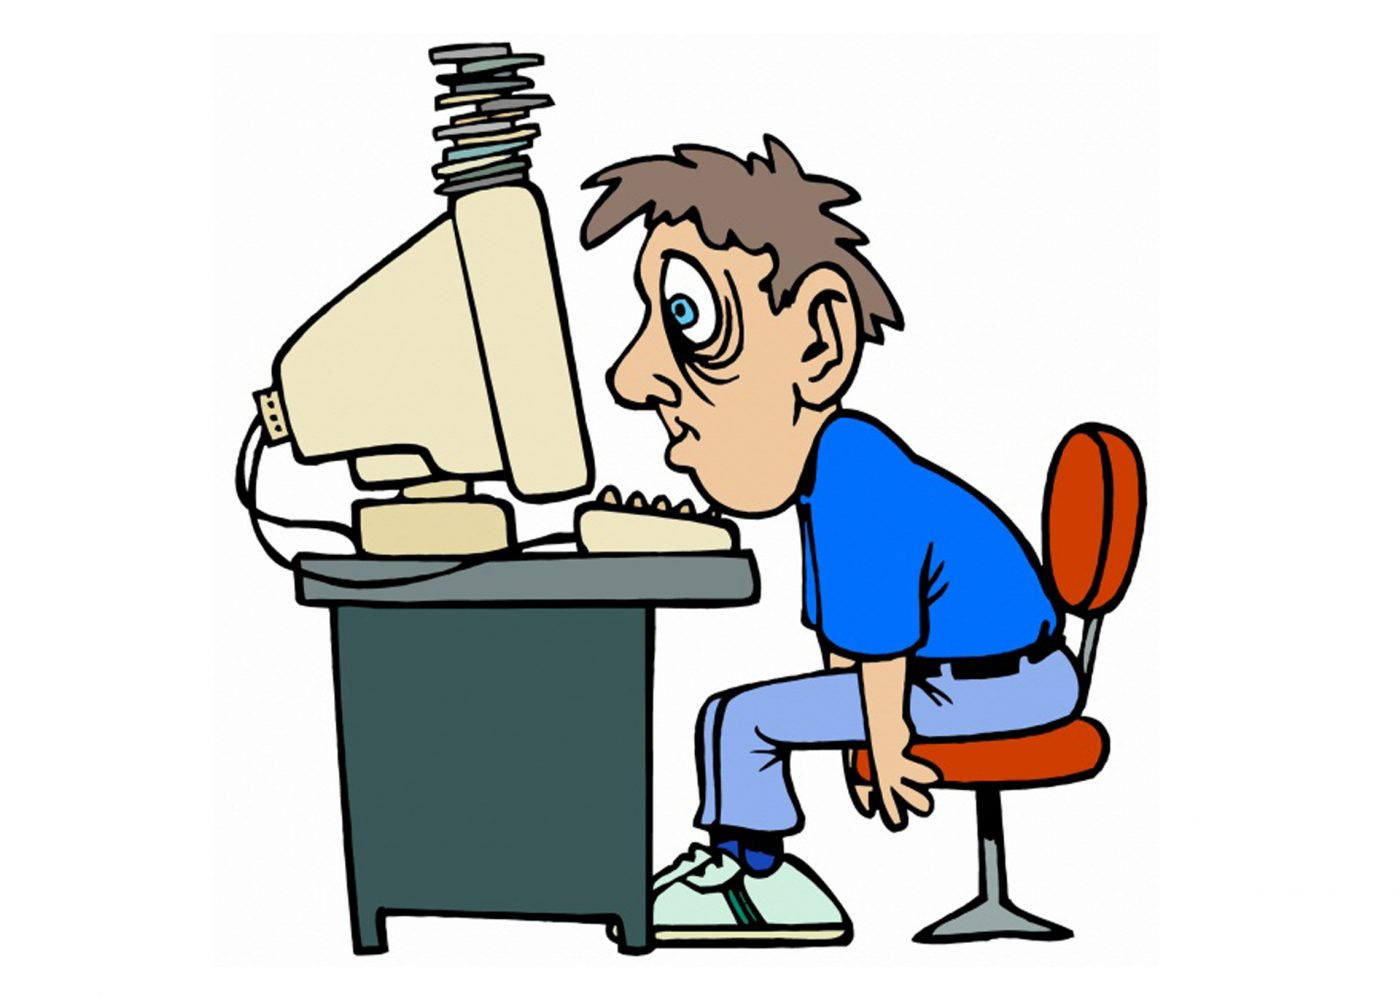 Larger clipart too Harm Sleep Memory Delaying Much